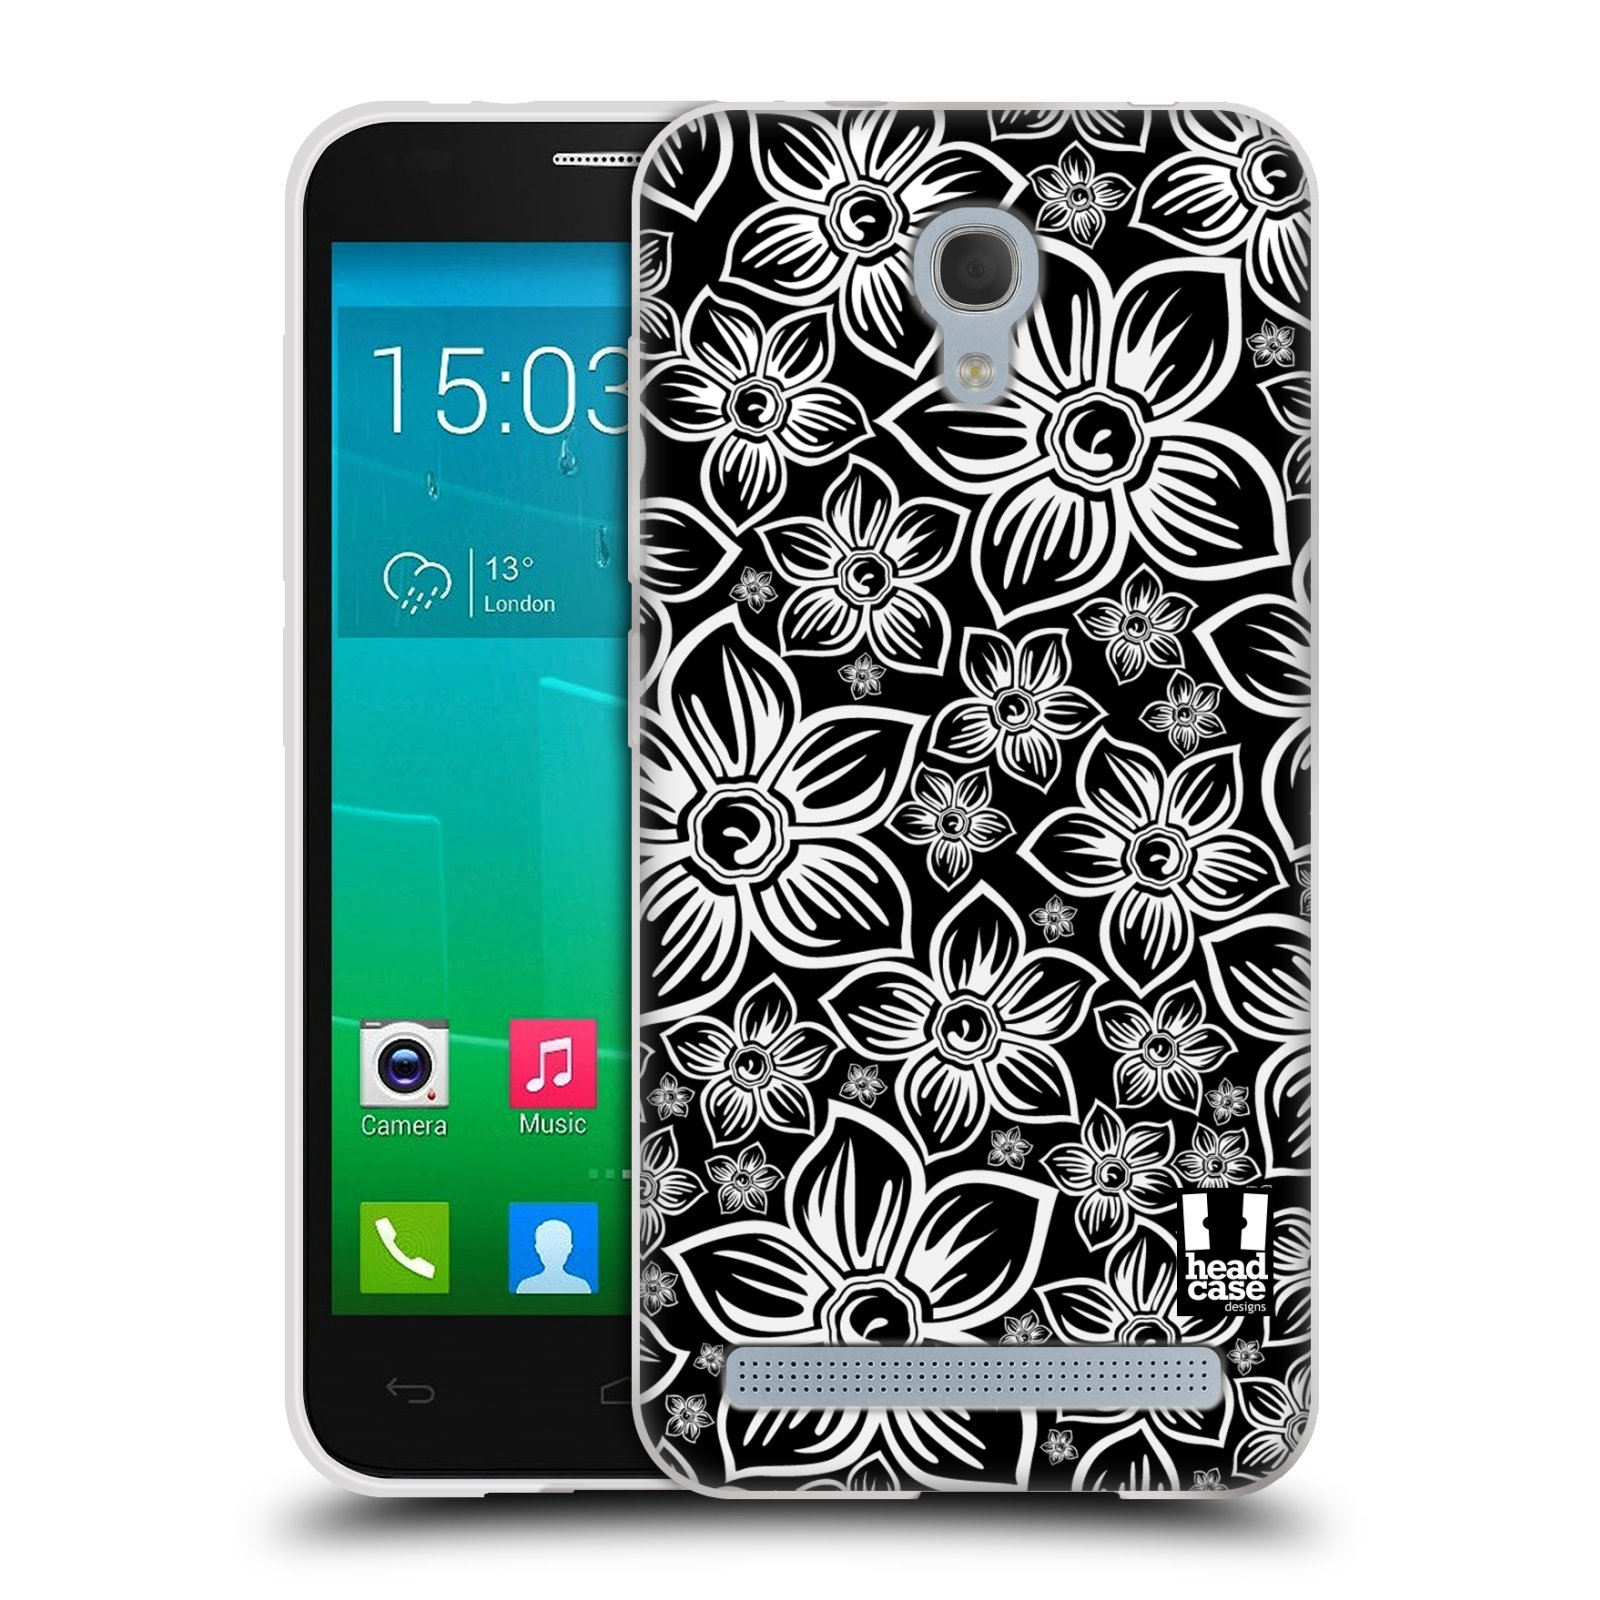 Silikonové pouzdro na mobil Alcatel One Touch Idol 2 Mini S 6036Y HEAD CASE FLORAL DAISY